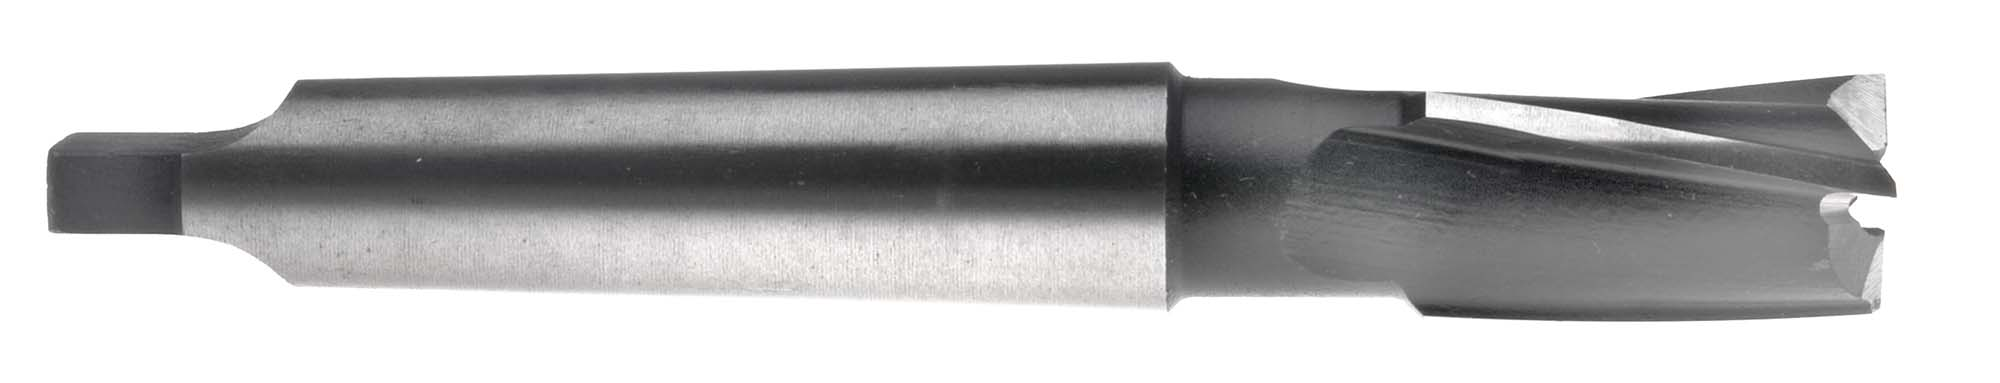 "1-7/8"" Taper Shank Counterbore, Interchangeable Pilot Type, High Speed Steel"